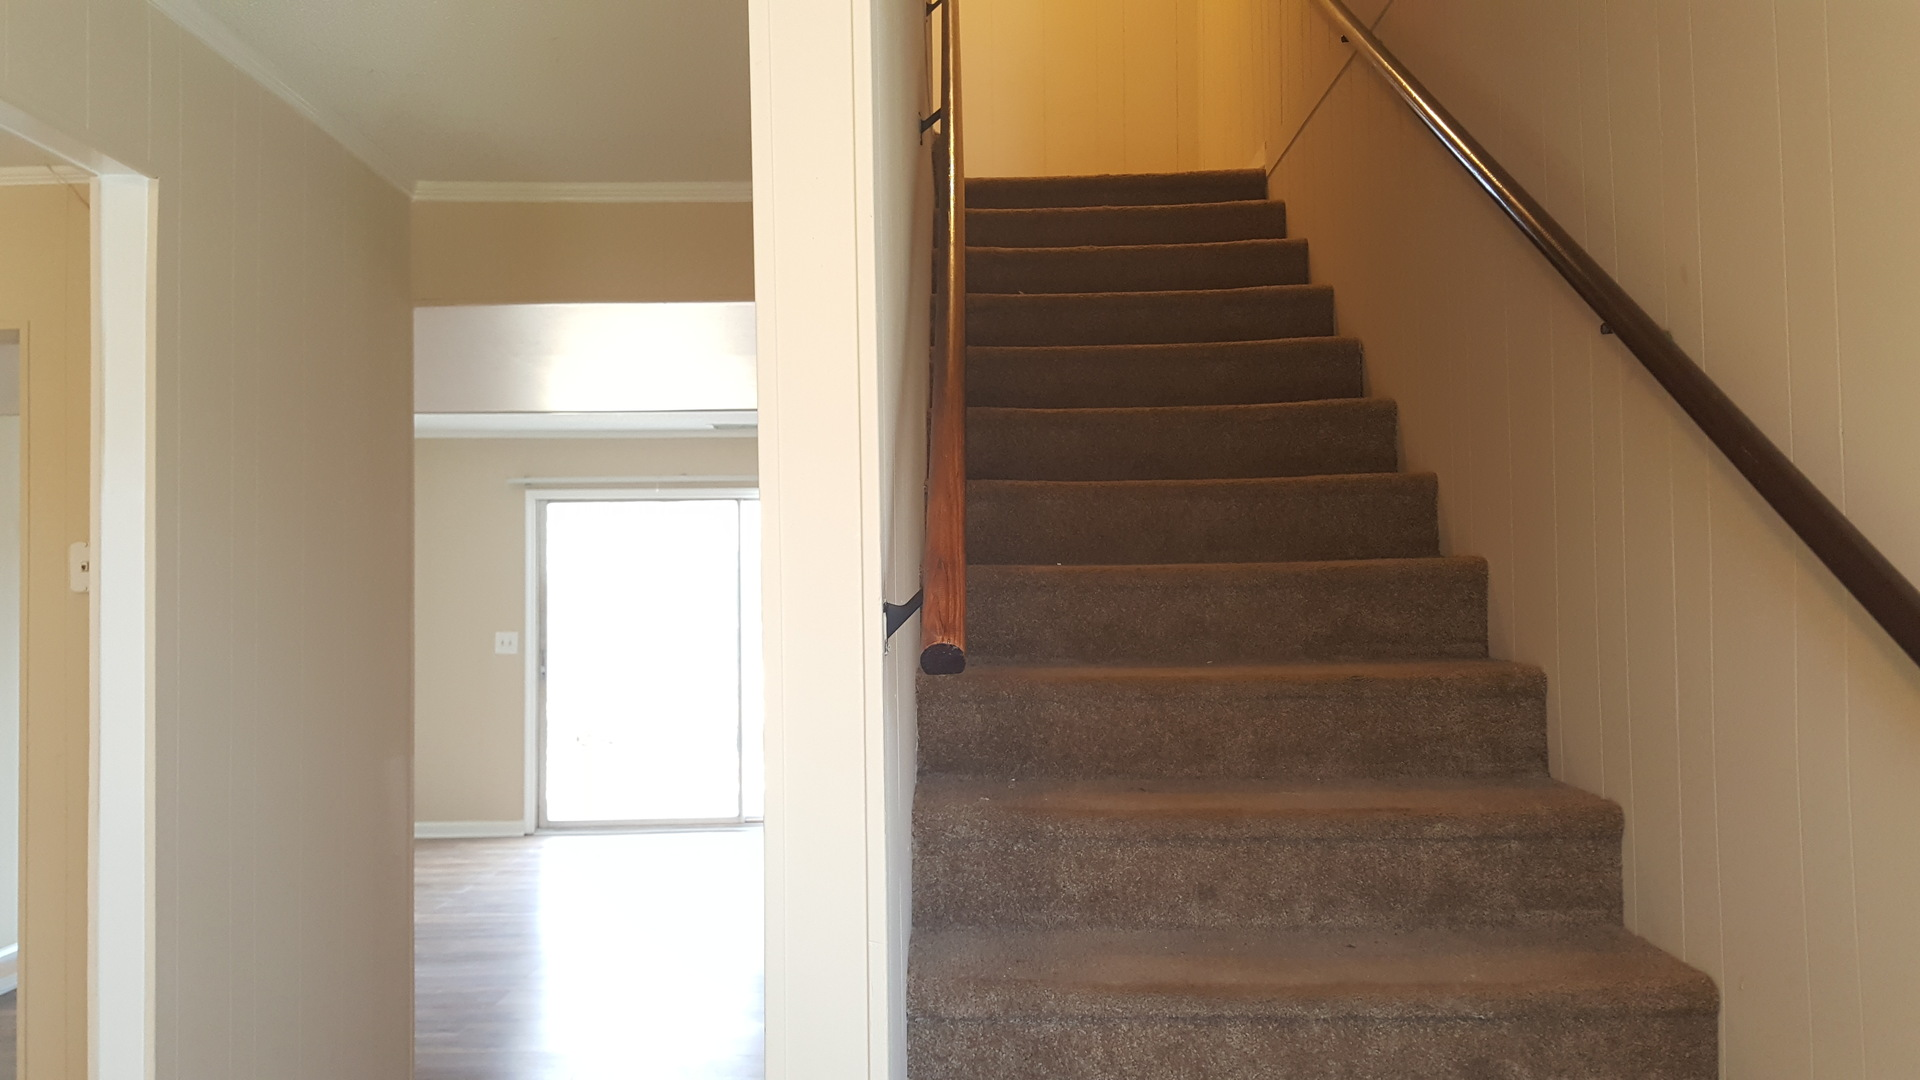 2 Bedroom Townhome W/ Wood Floors Property Management